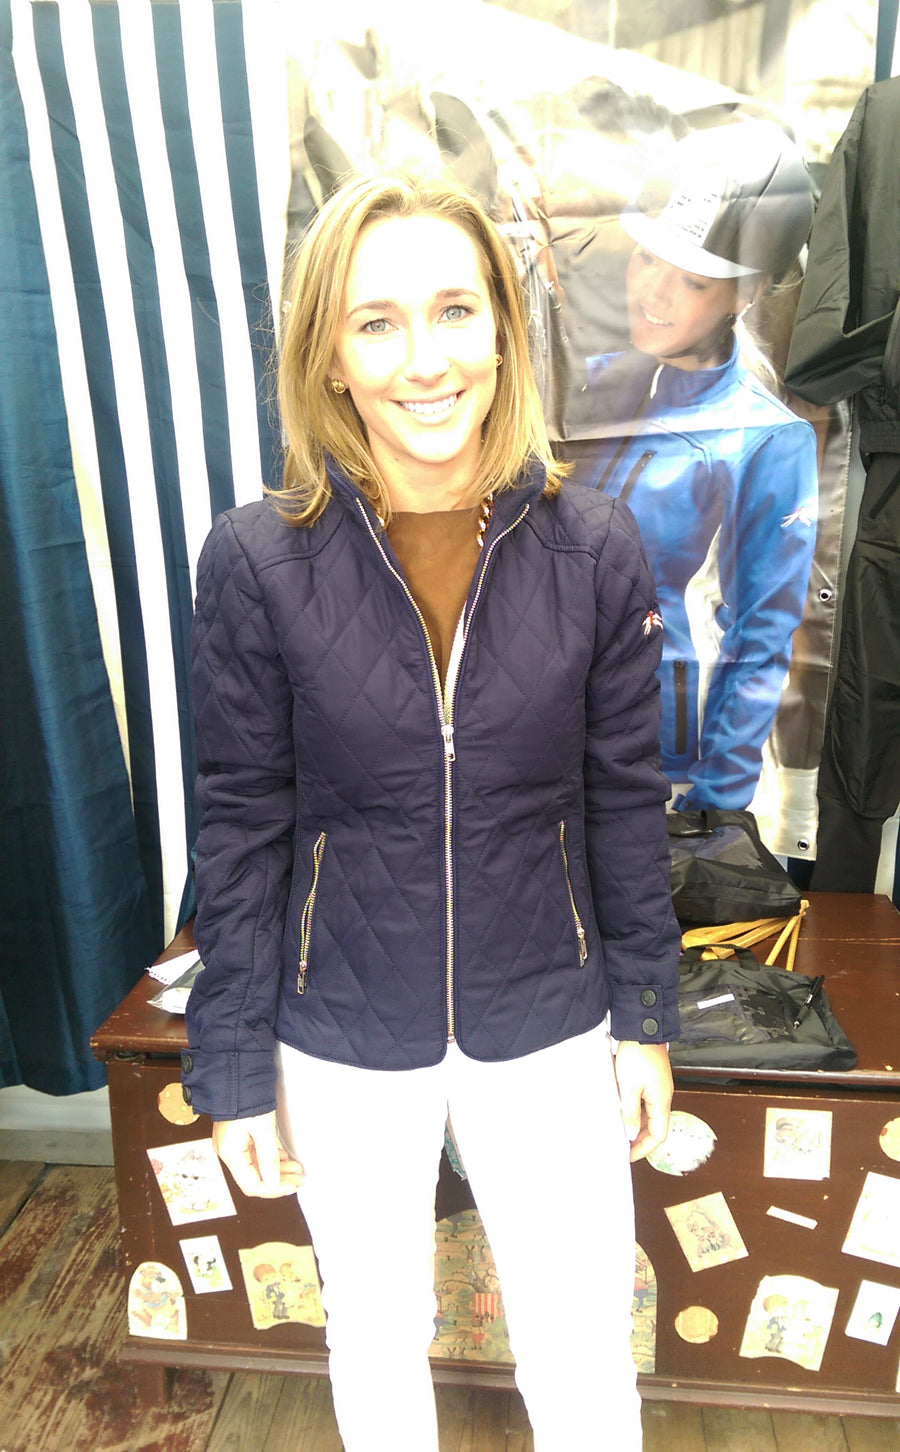 One of our happy customers wearing the PC Racewear jacket from new collection, at the RDS Dublin Horse Show 2015